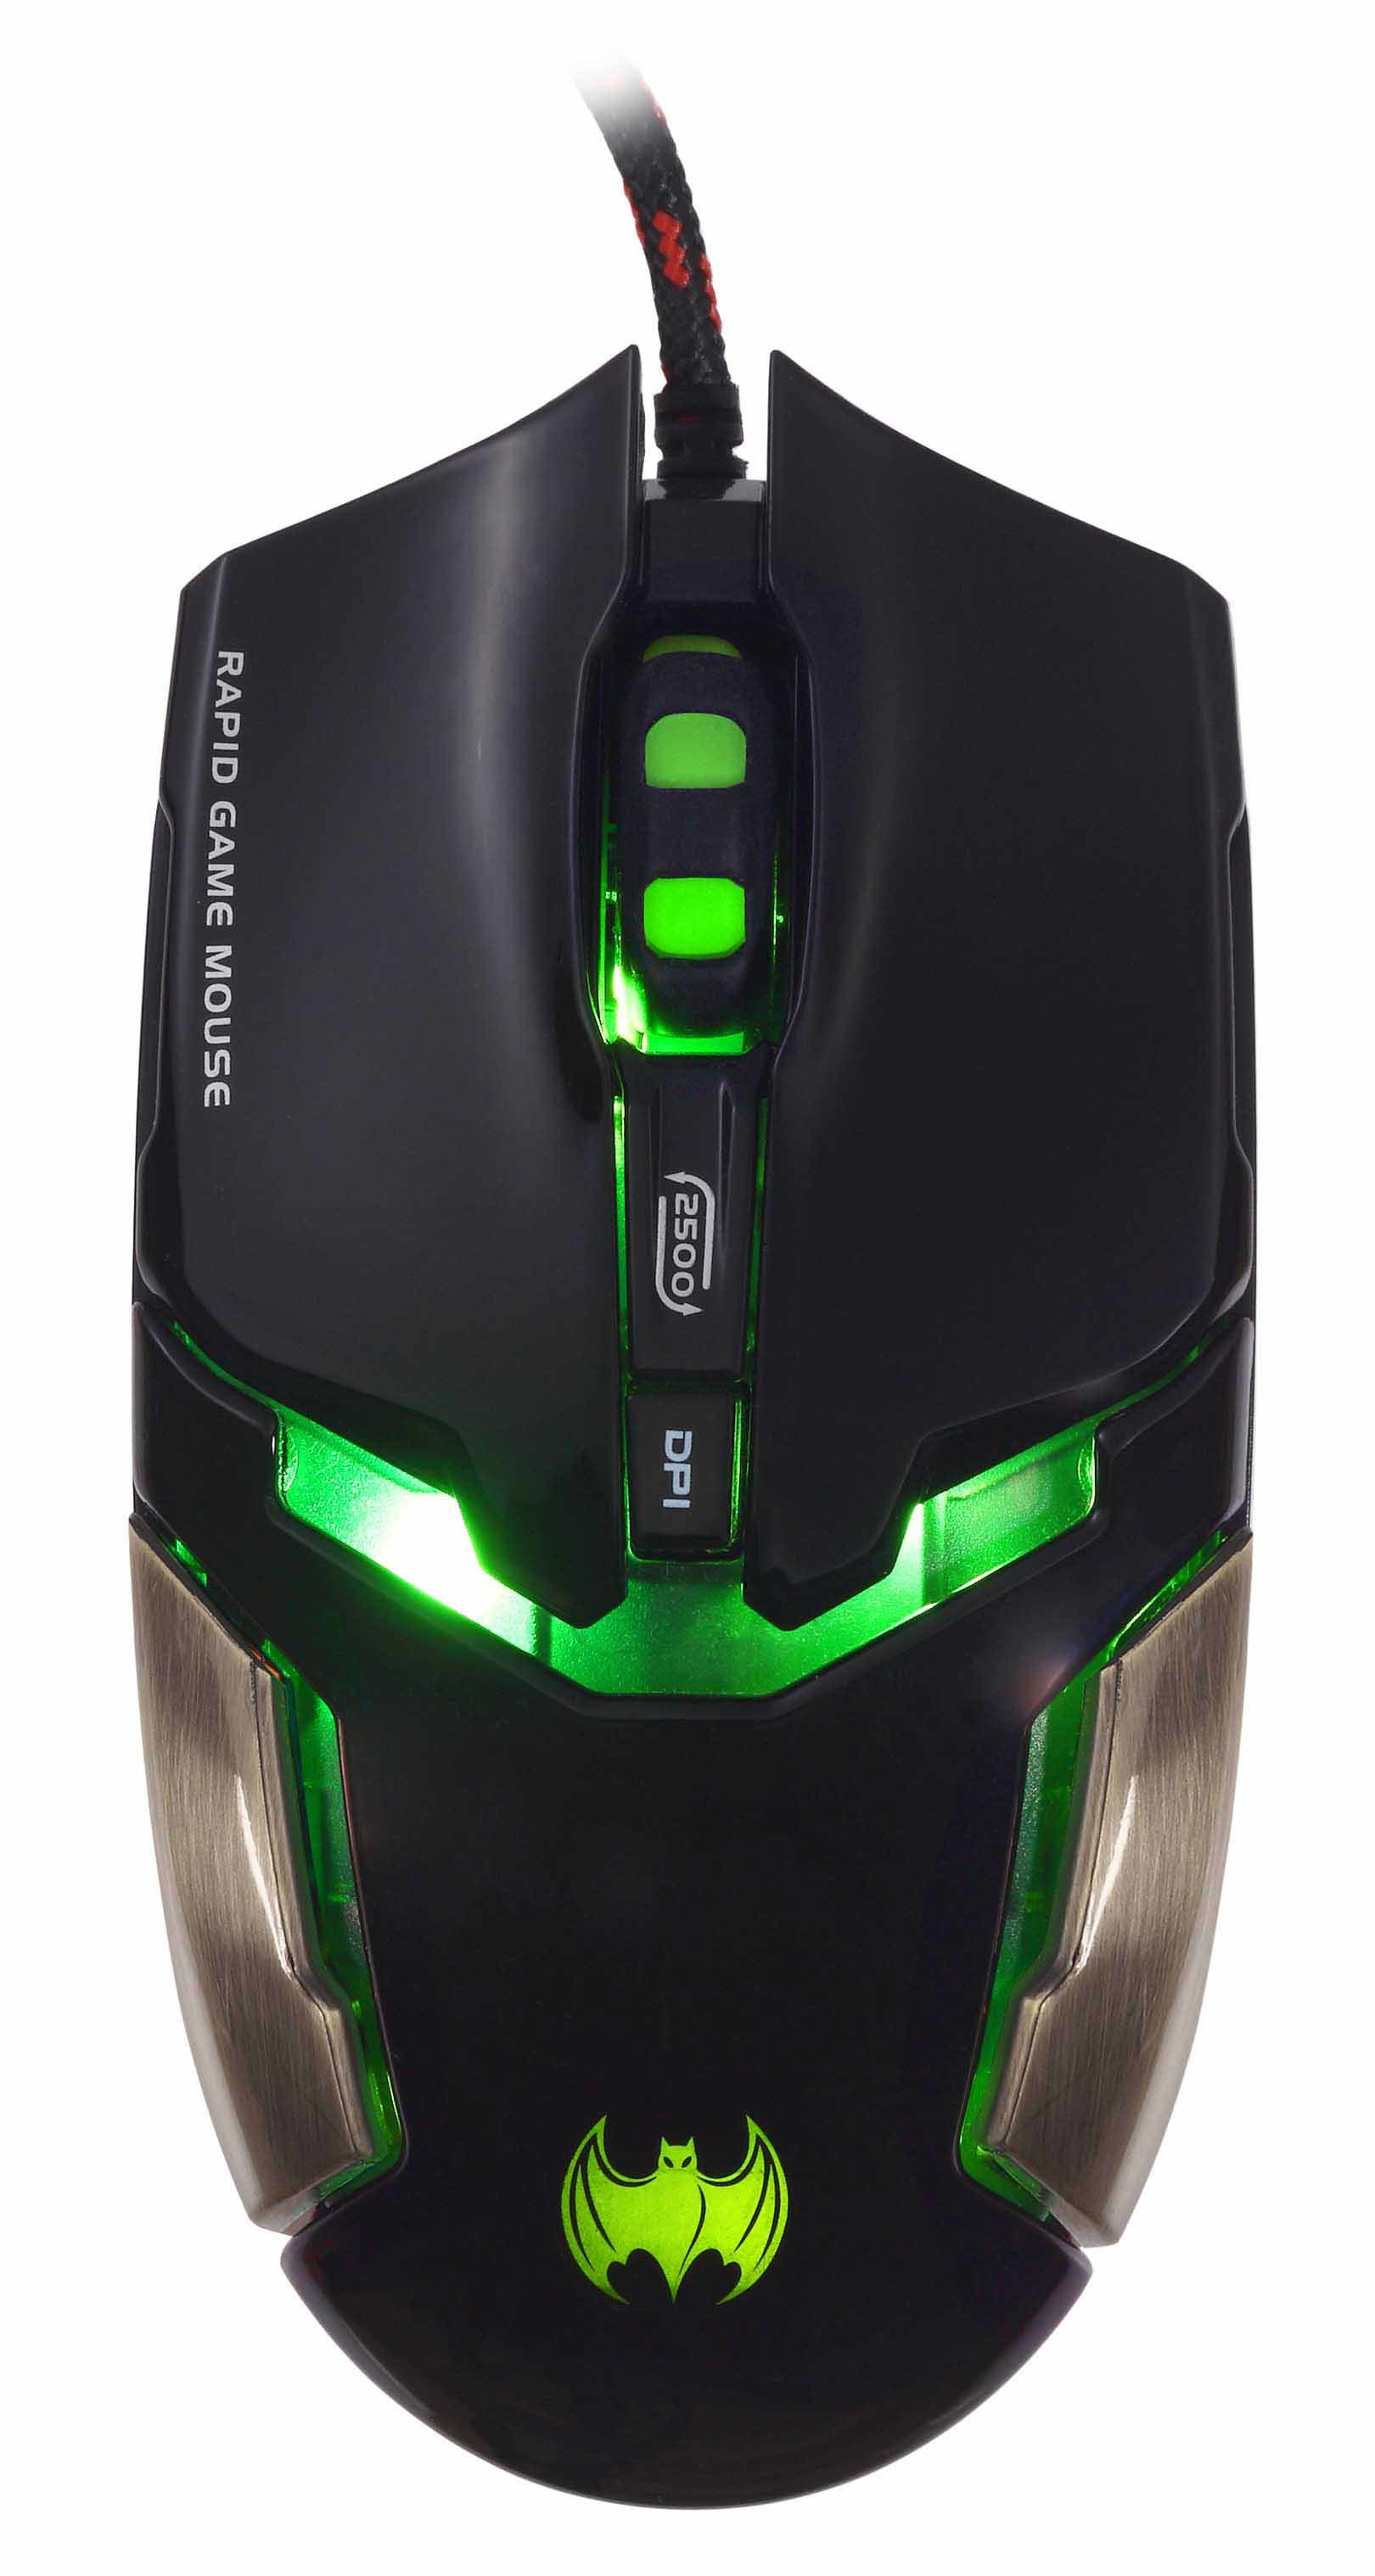 Cool Gaming Mouse, Excellent Design